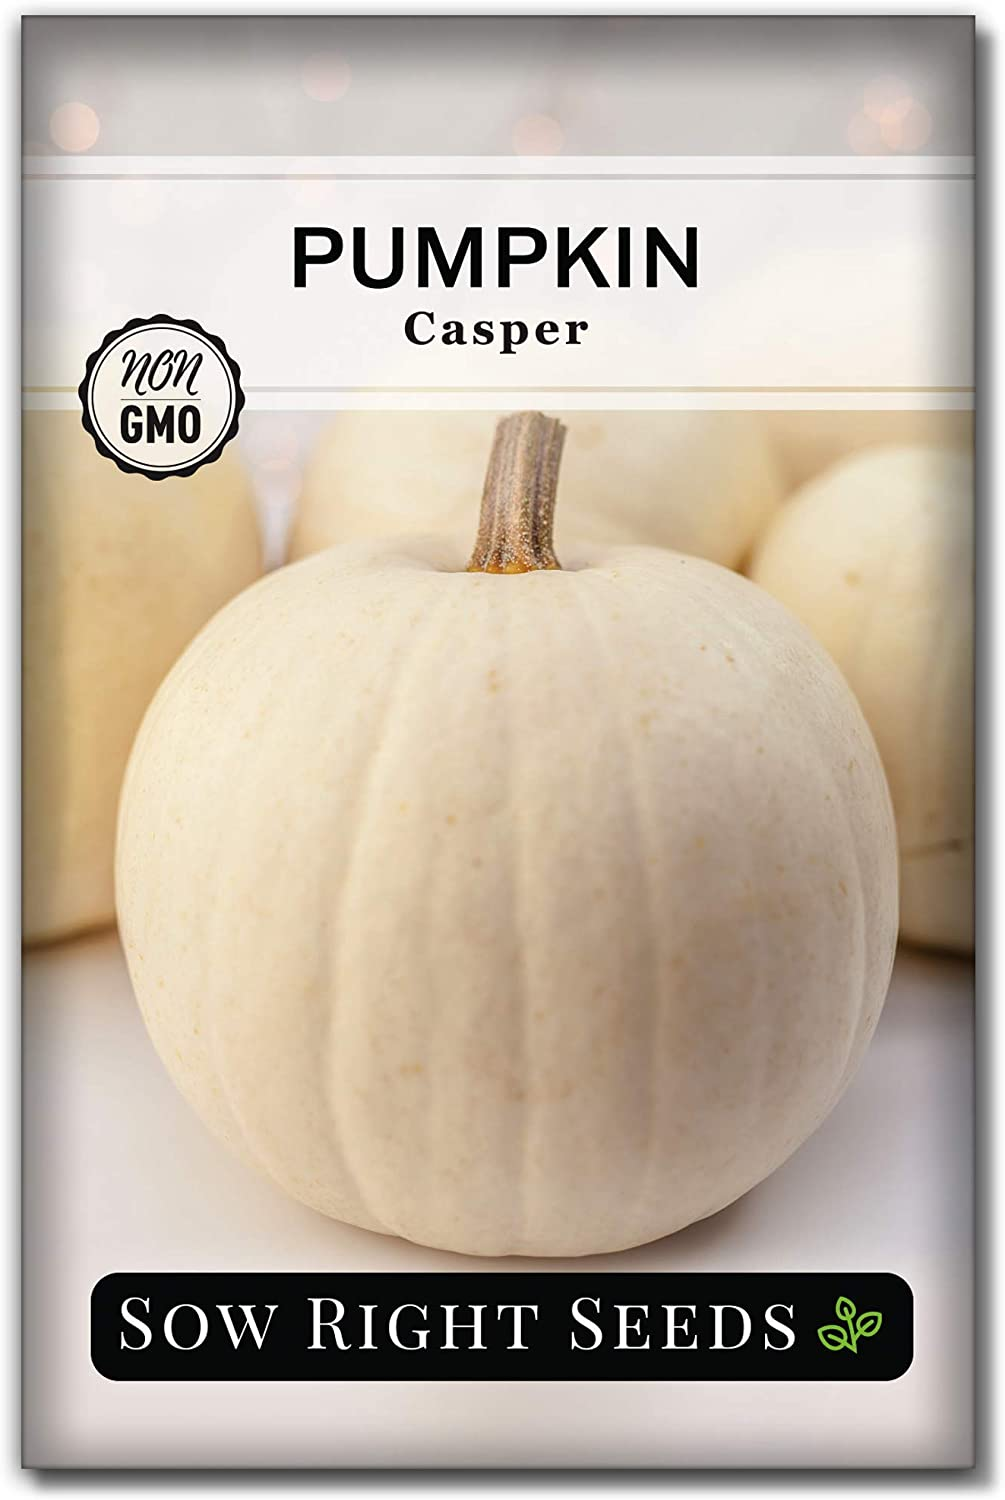 Sow Right Seeds - White Casper Pumpkin Seed for Planting - Non-GMO Heirloom Packet with Instructions to Plant a Home Vegetable Garden